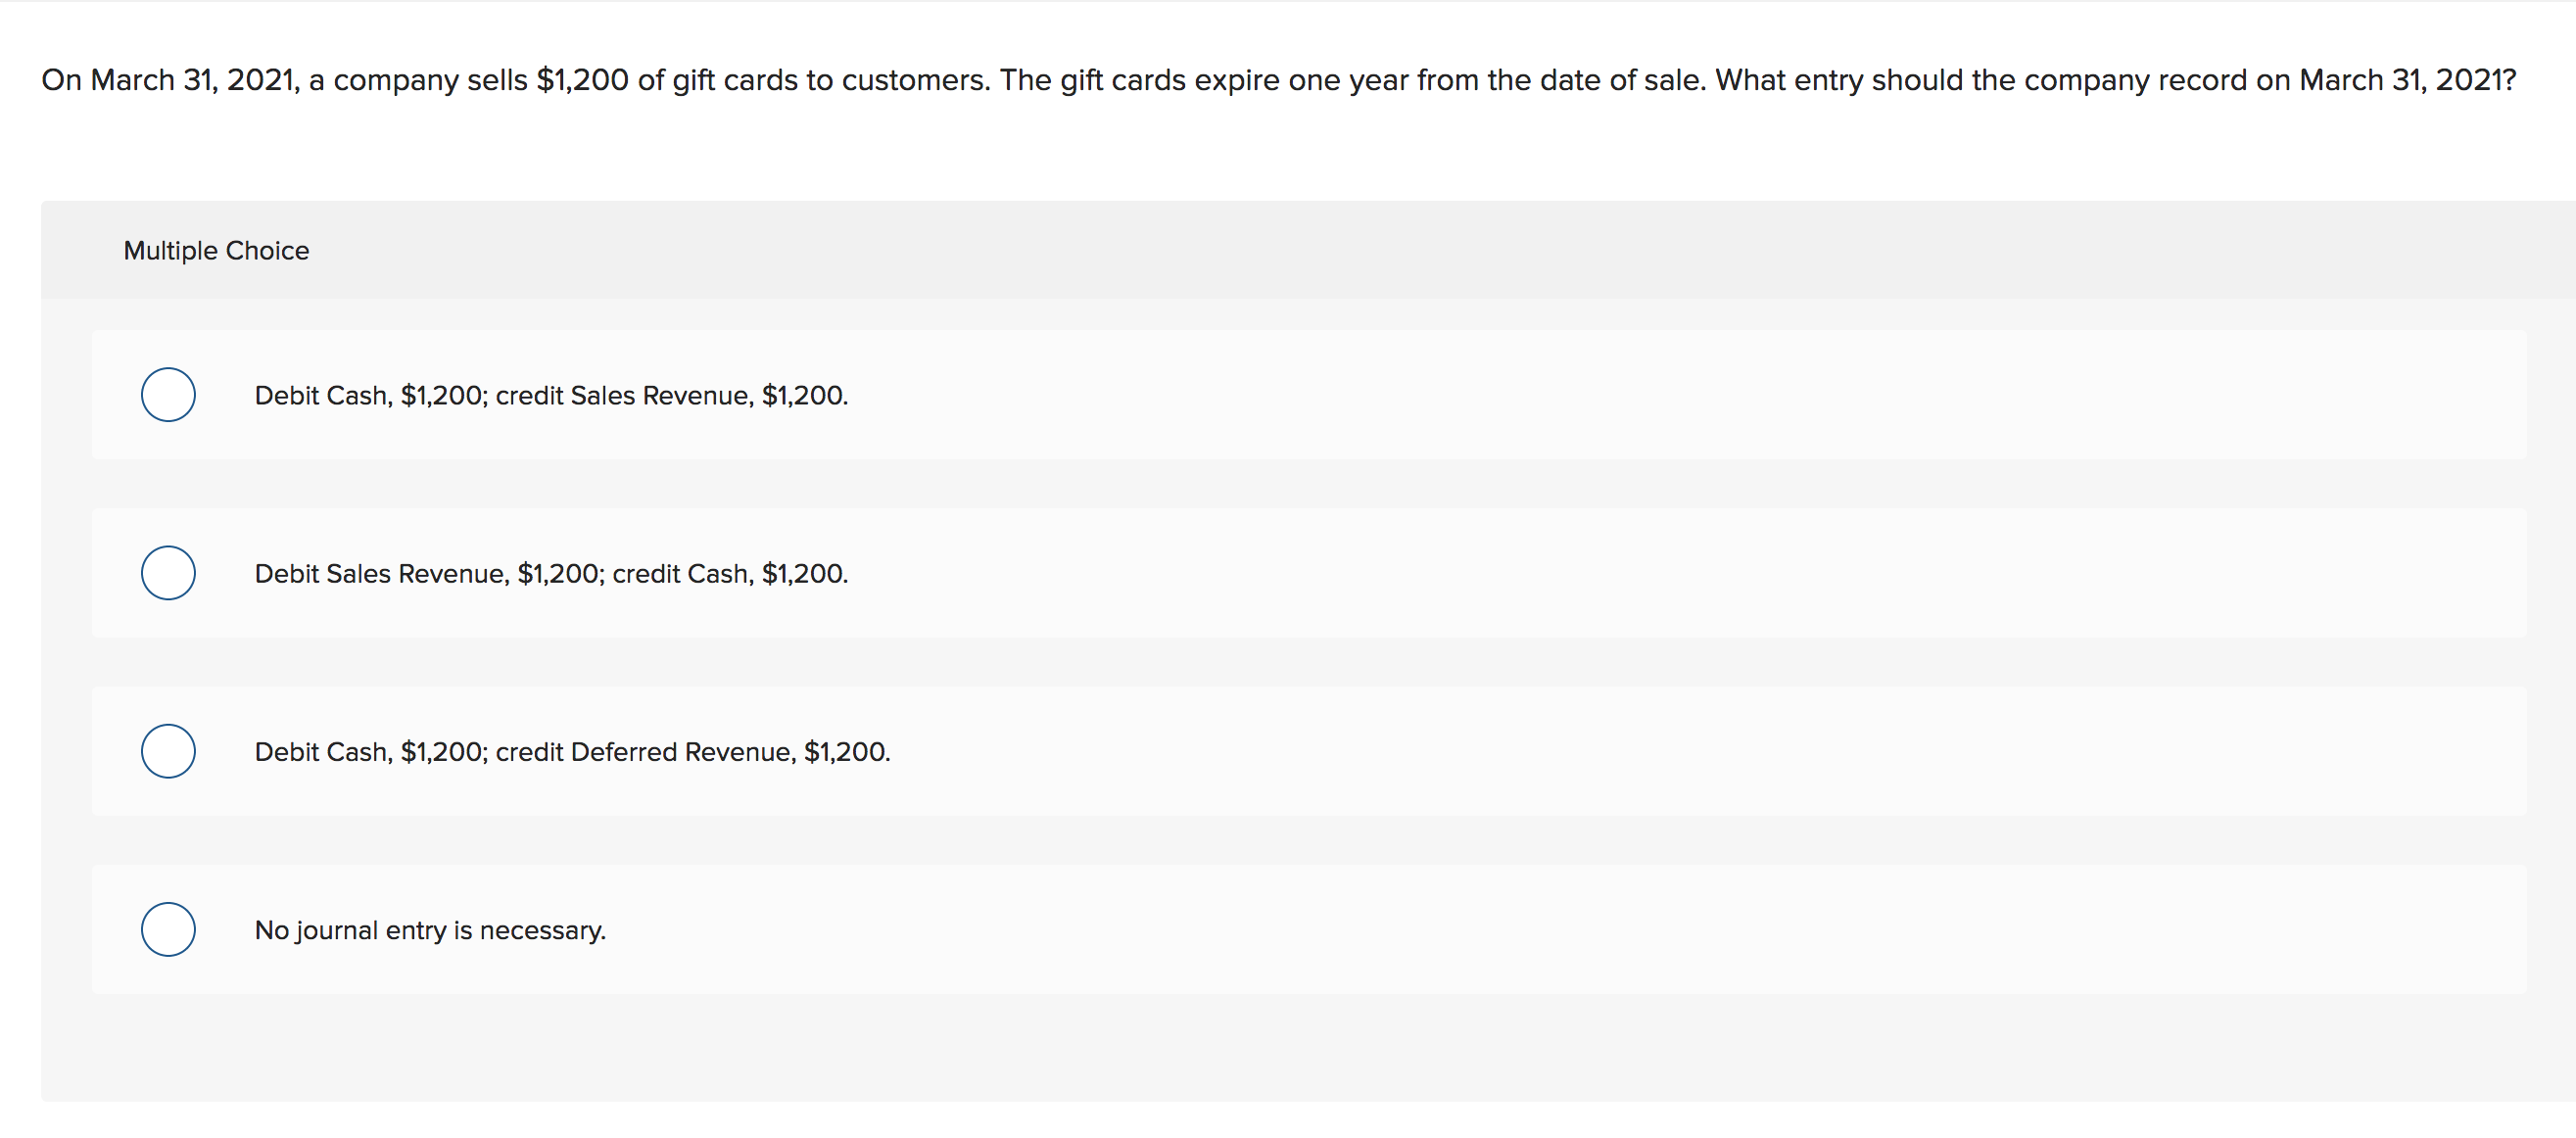 On March 31, 2021, a company sells $1,200 of gift cards to customers. The gift cards expire one year from the date of sale. What entry should the company record on March 31, 2021? Multiple Choice Debit Cash, $1,200; credit Sales Revenue, $1,200. Debit Sales Revenue, $1,200; credit Cash, $1,200. Debit Cash, $1,200; credit Deferred Revenue, $1,200. No journal entry is necessary.